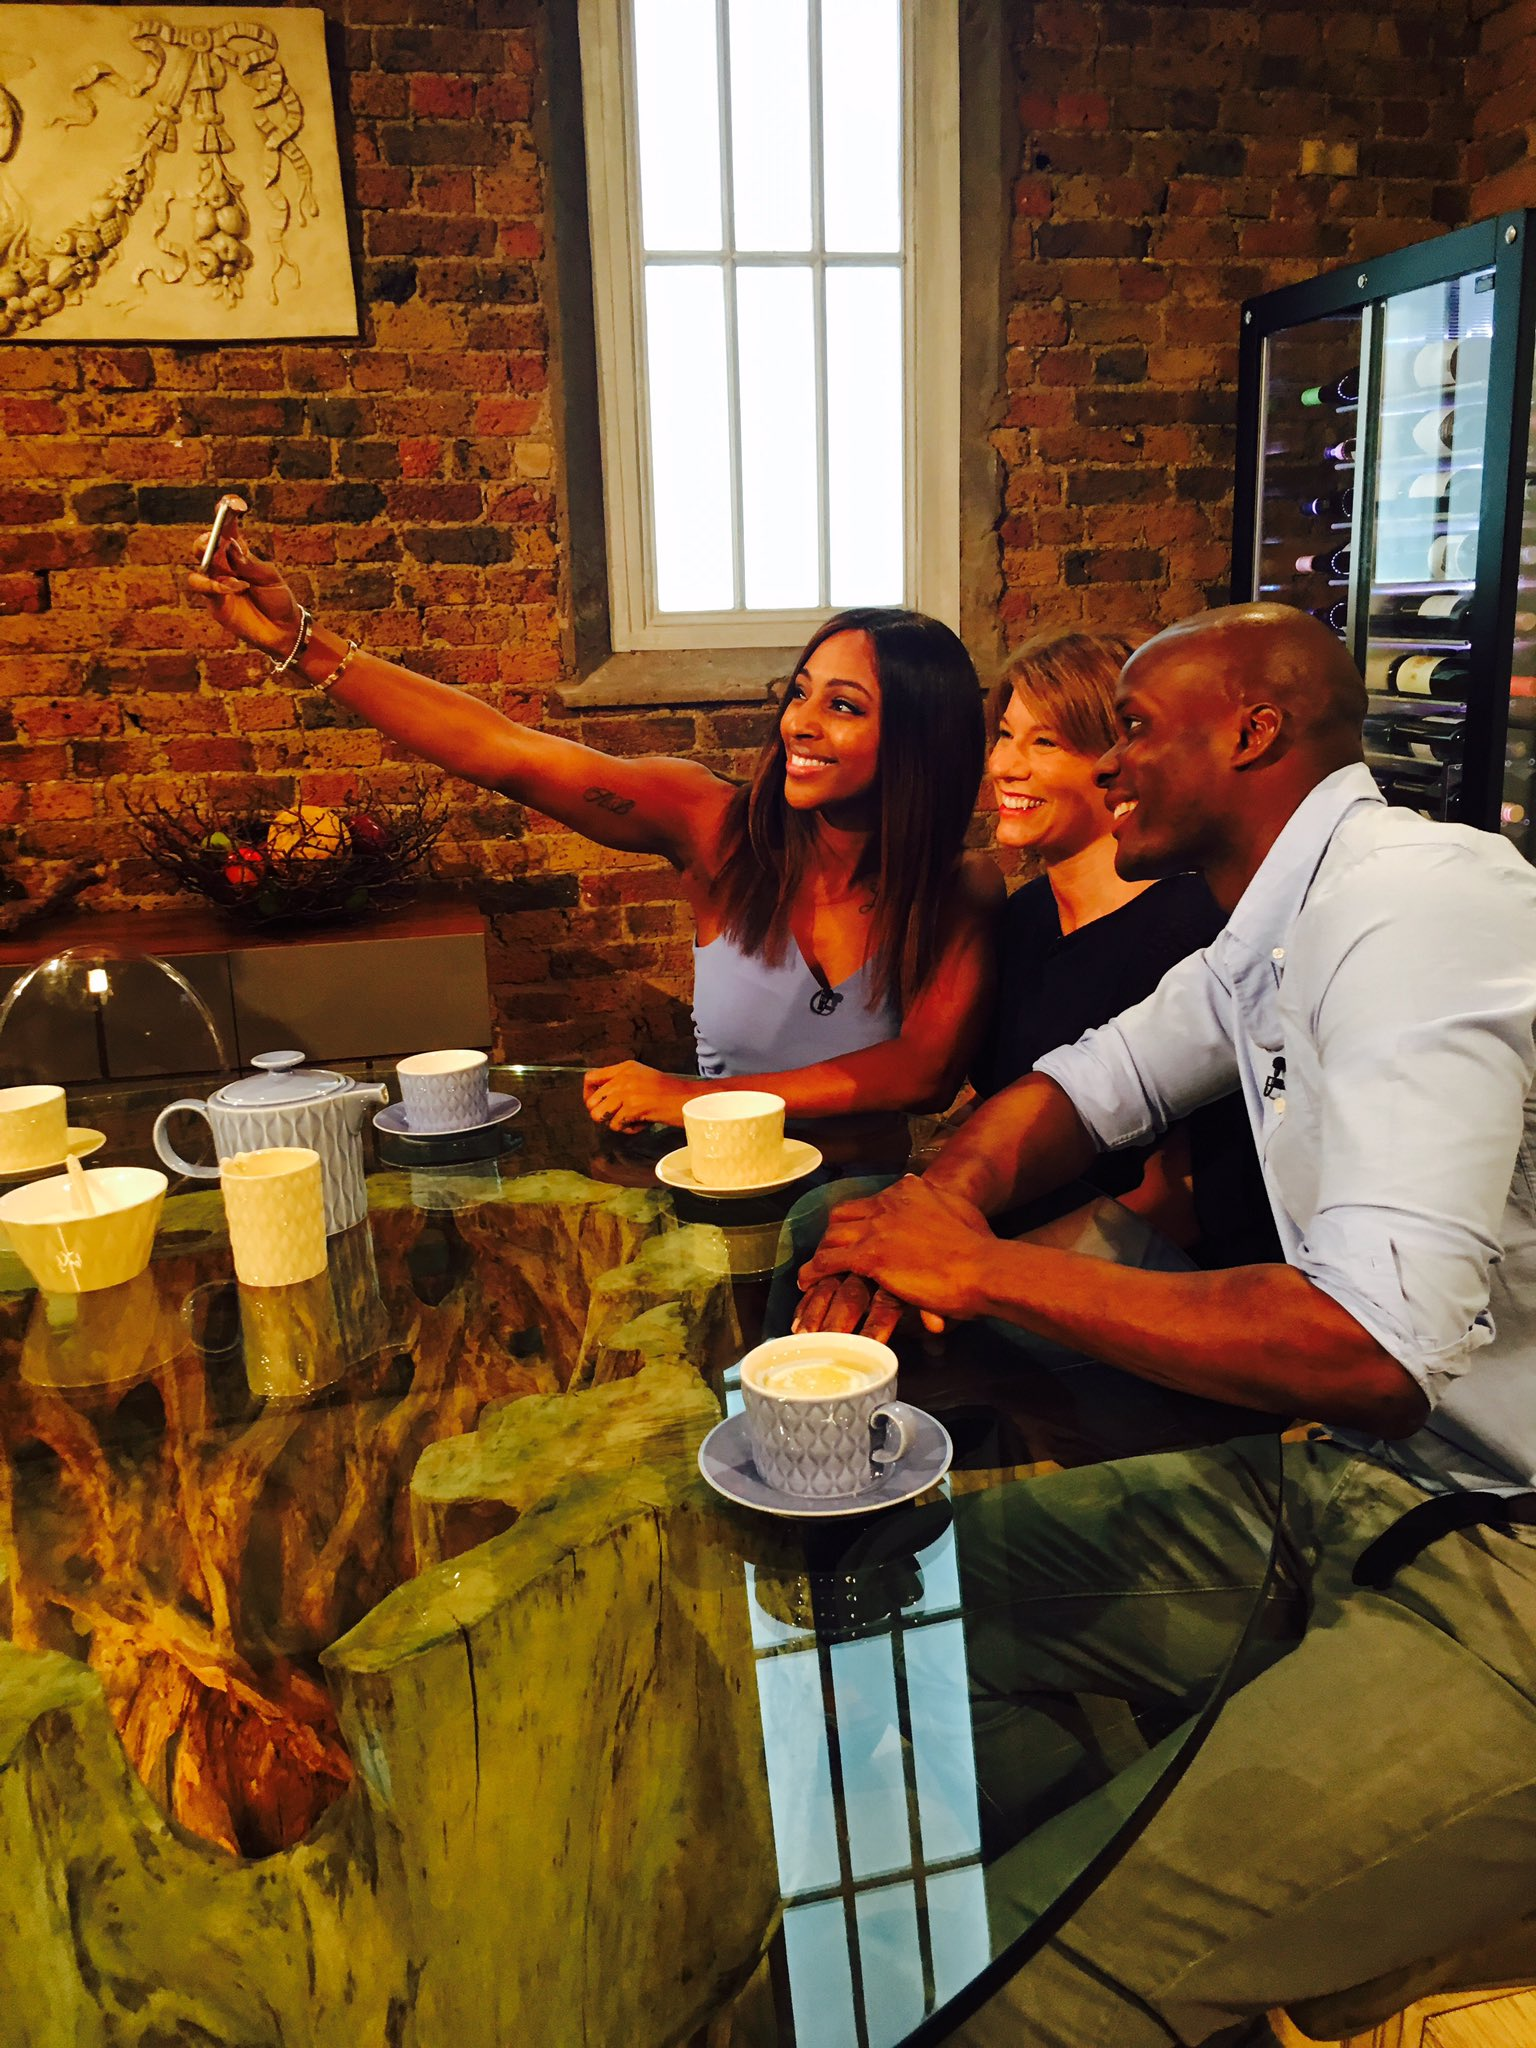 RT @Electric_MGT: Let me take a #selfie ⭐️ @SaturdayKitchen @alexandramusic @BBCOne on at 9AM TUNE IN! https://t.co/IGogRBhbbX